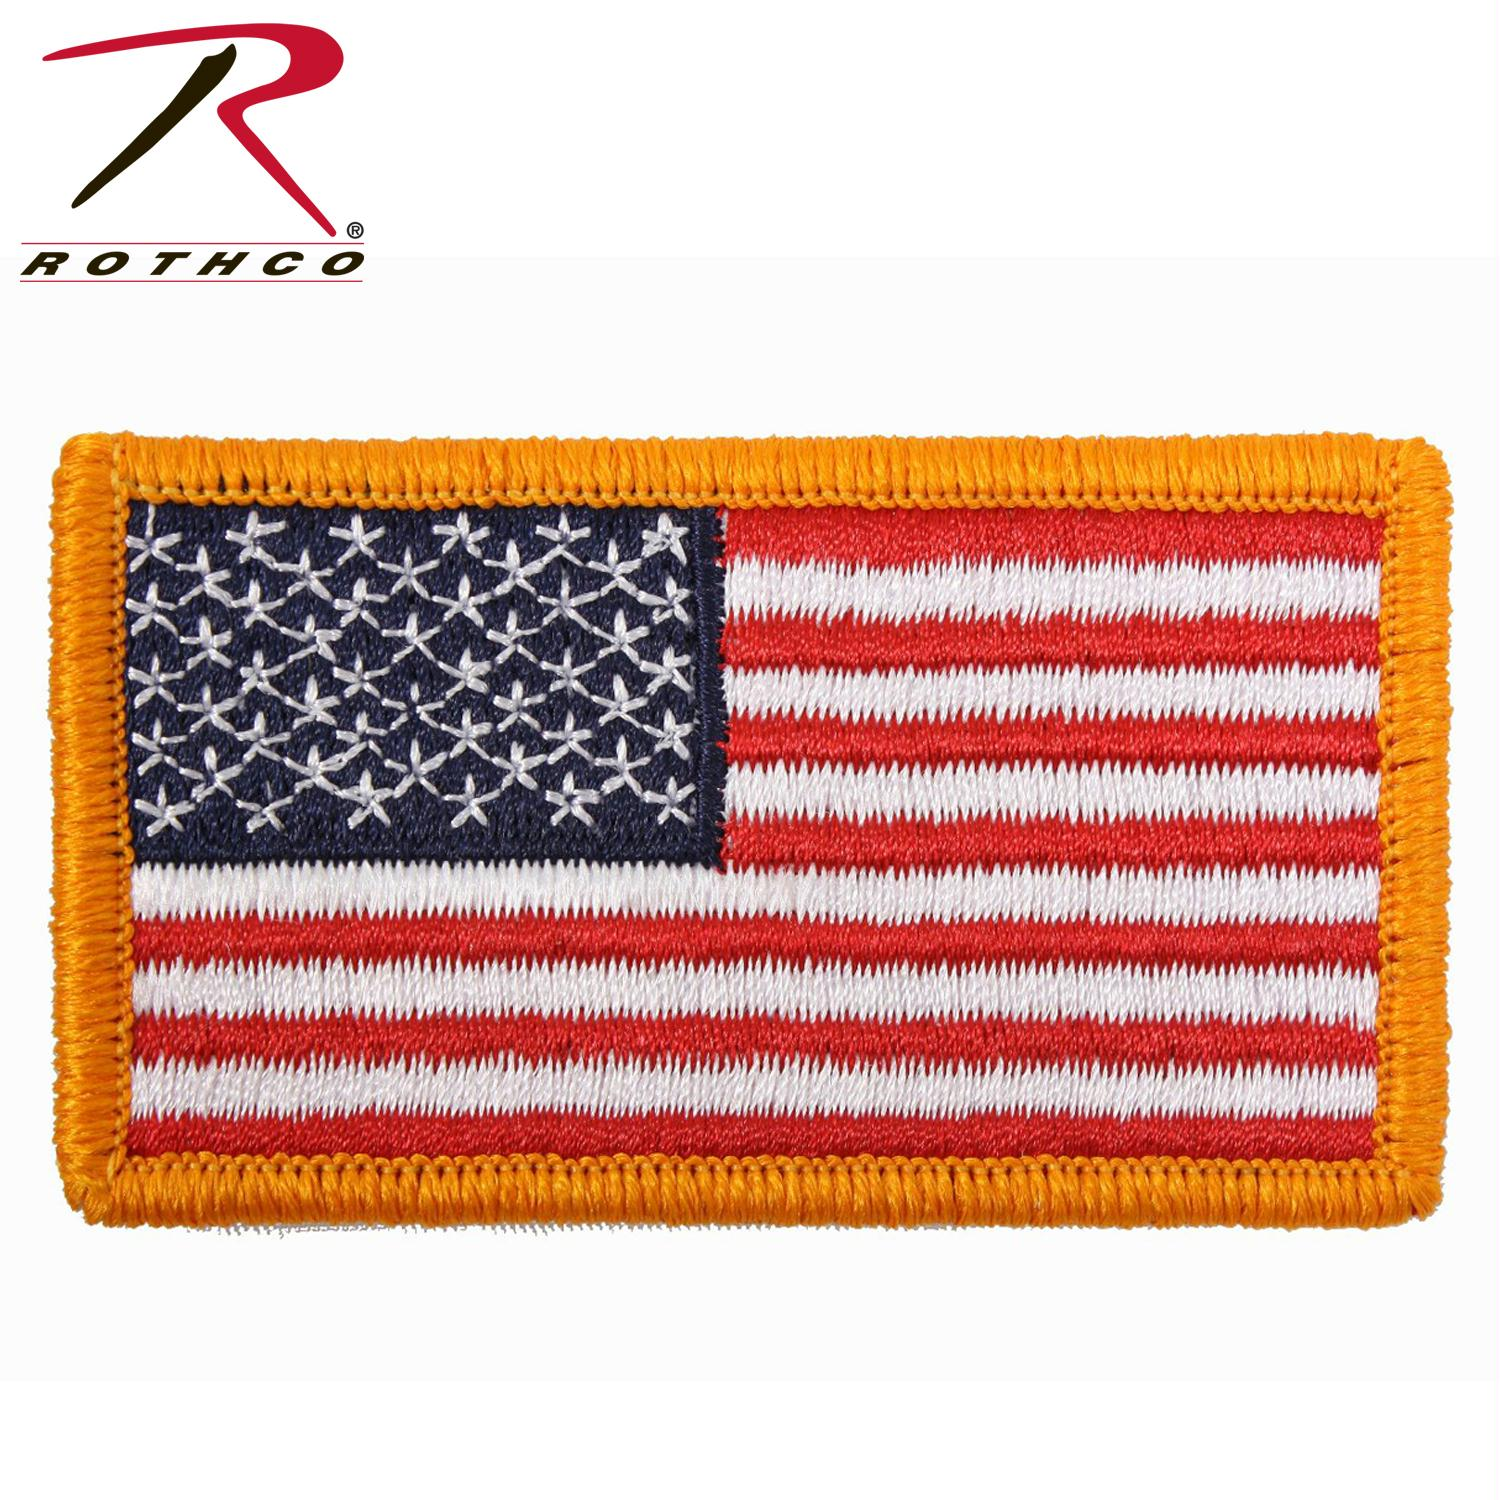 Rothco Iron On / Sew On Embroidered US Flag Patch - Red White Blue with Yellow Border / Normal